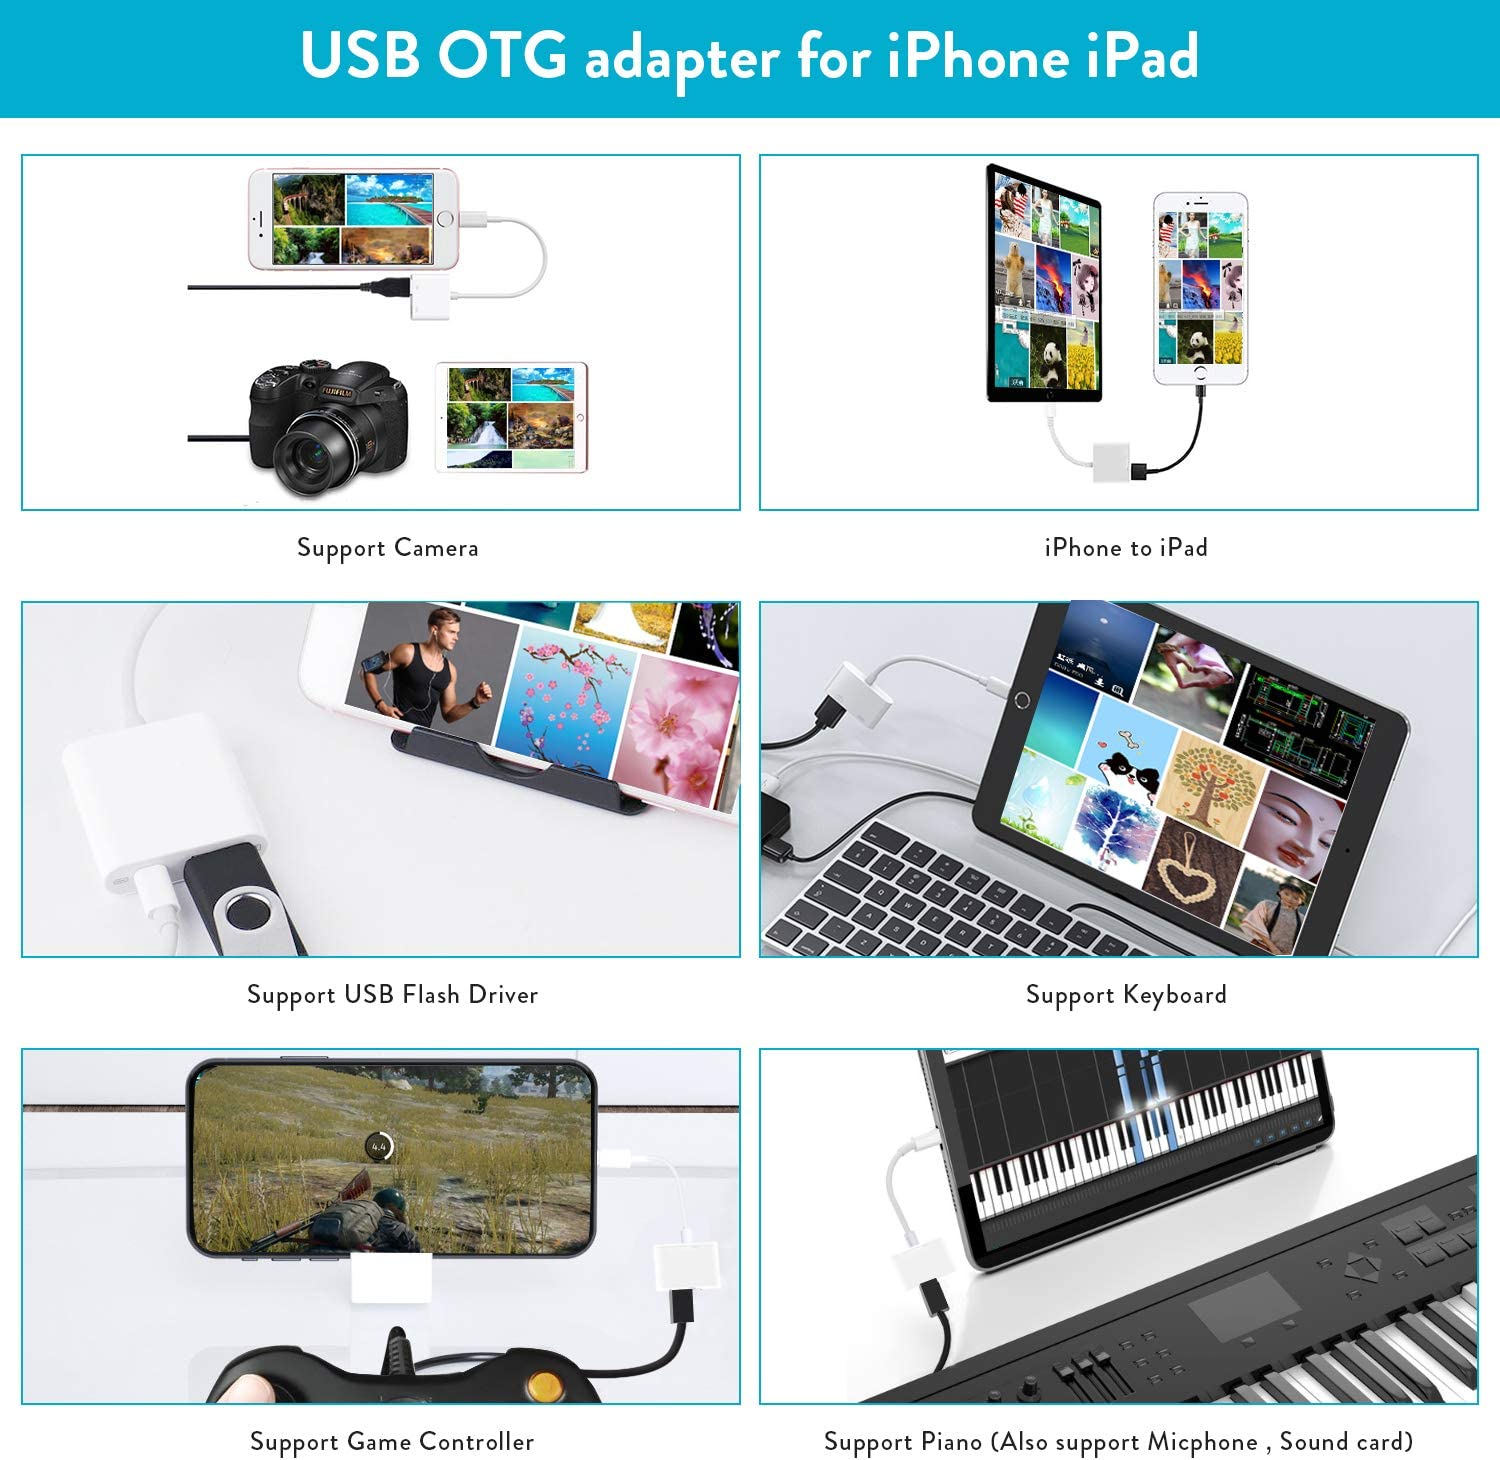 USB Camera Adapter for iPhone iPad,USB 3.0 OTG Adapter with Charing Port Compatible with iPhone 11//X//8//7//6//iPad,Support Digital Camera,USB Flash Driver MIDI Keyboard,Support iOS 9.2-13+,Upto 500mAh